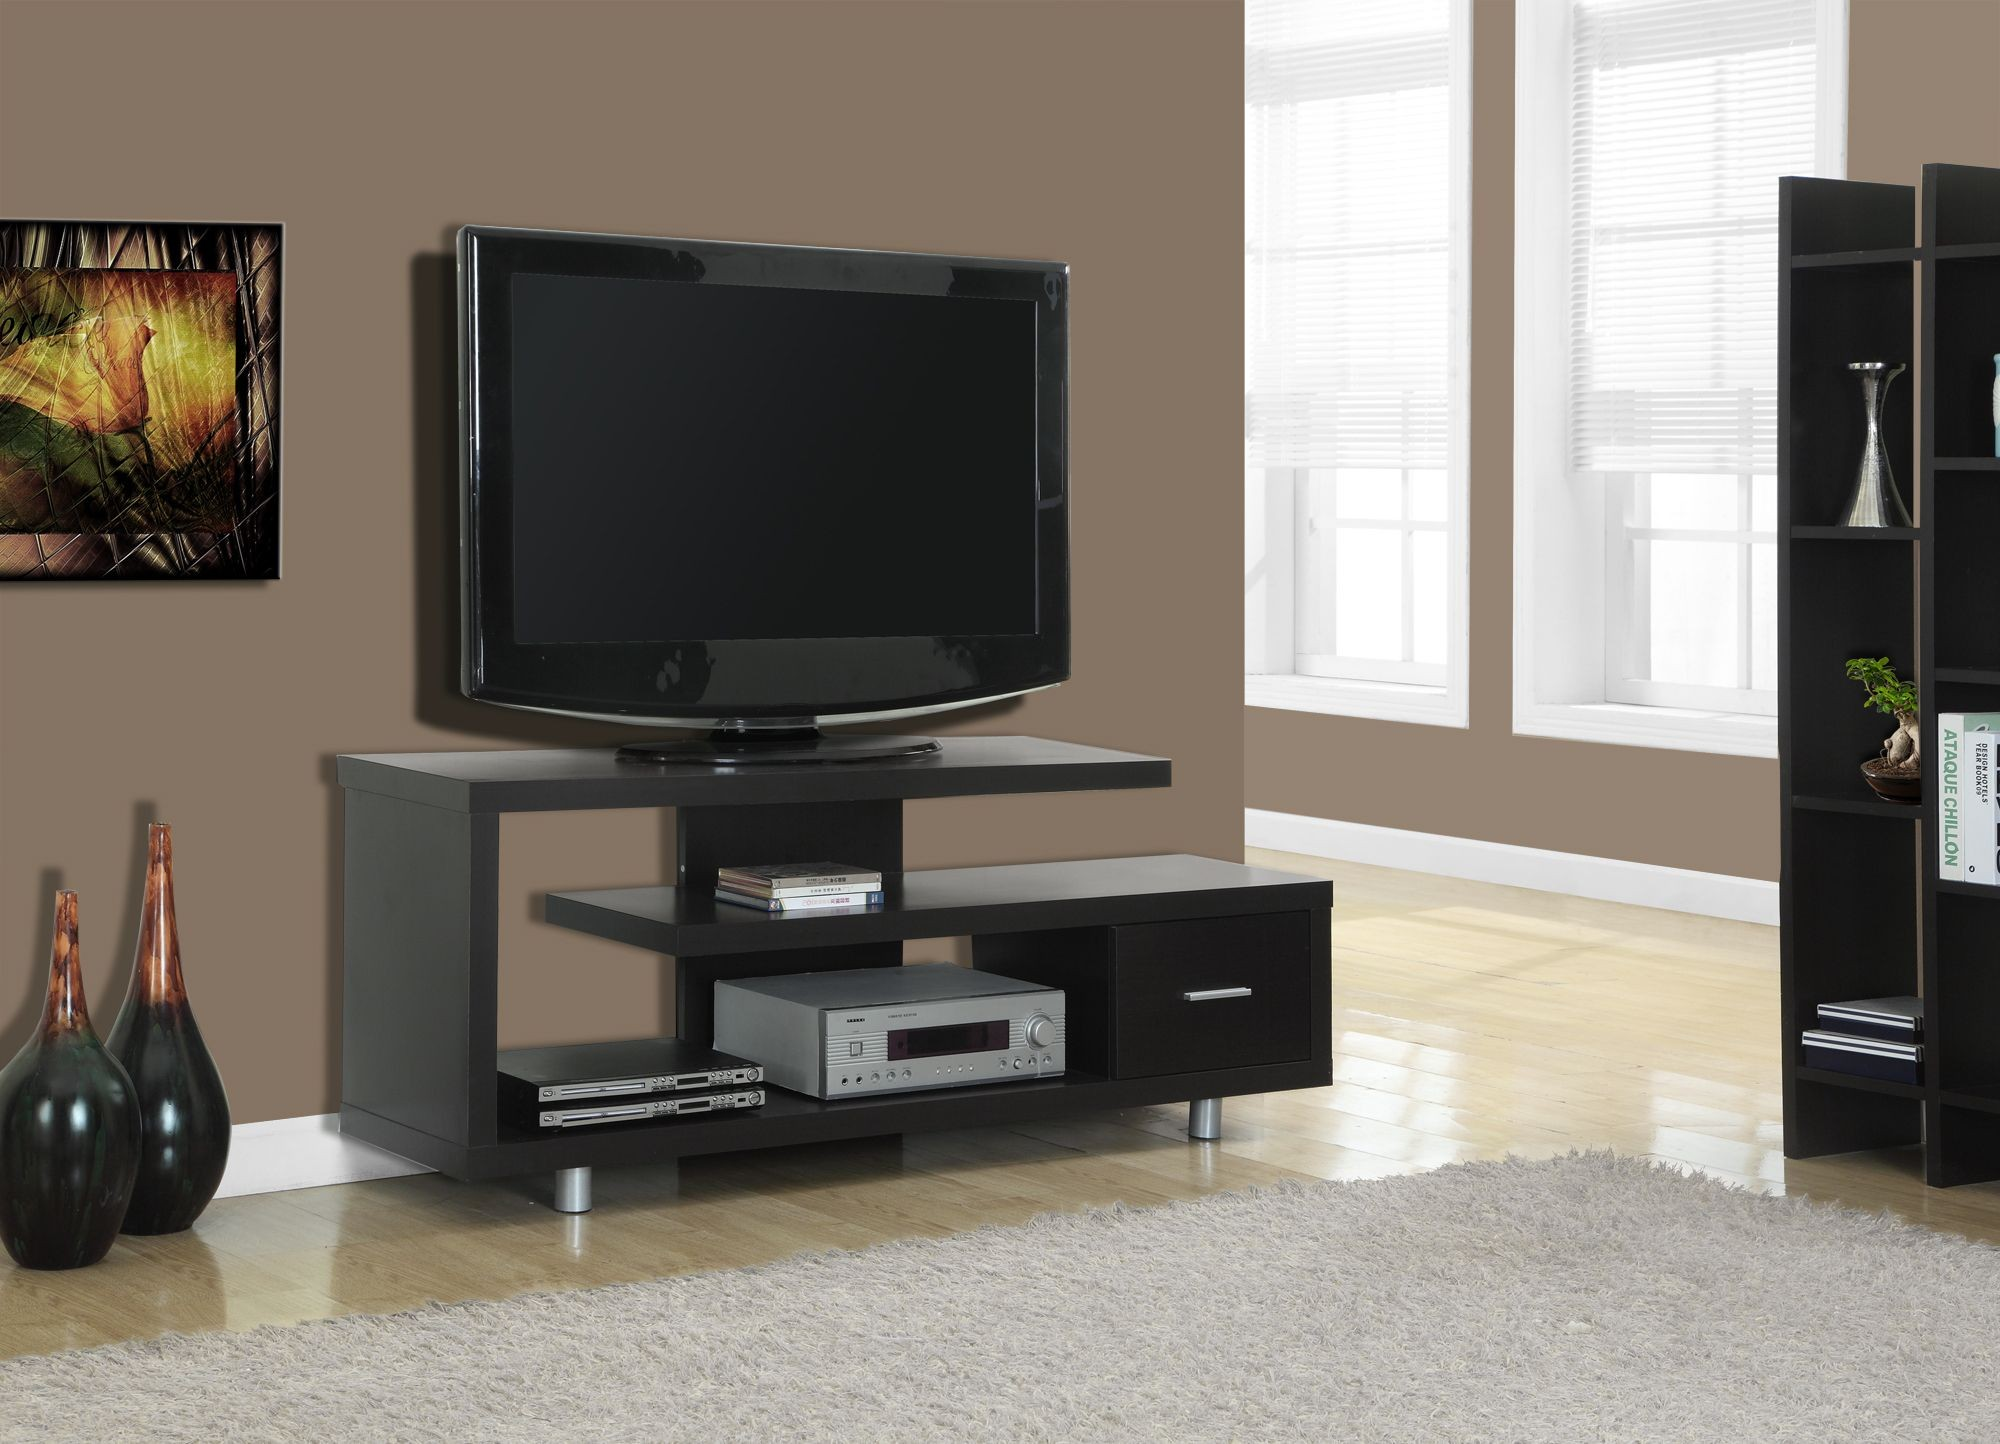 2572 cappuccino hollow core tv console from monarch 2572 coleman furniture. Black Bedroom Furniture Sets. Home Design Ideas